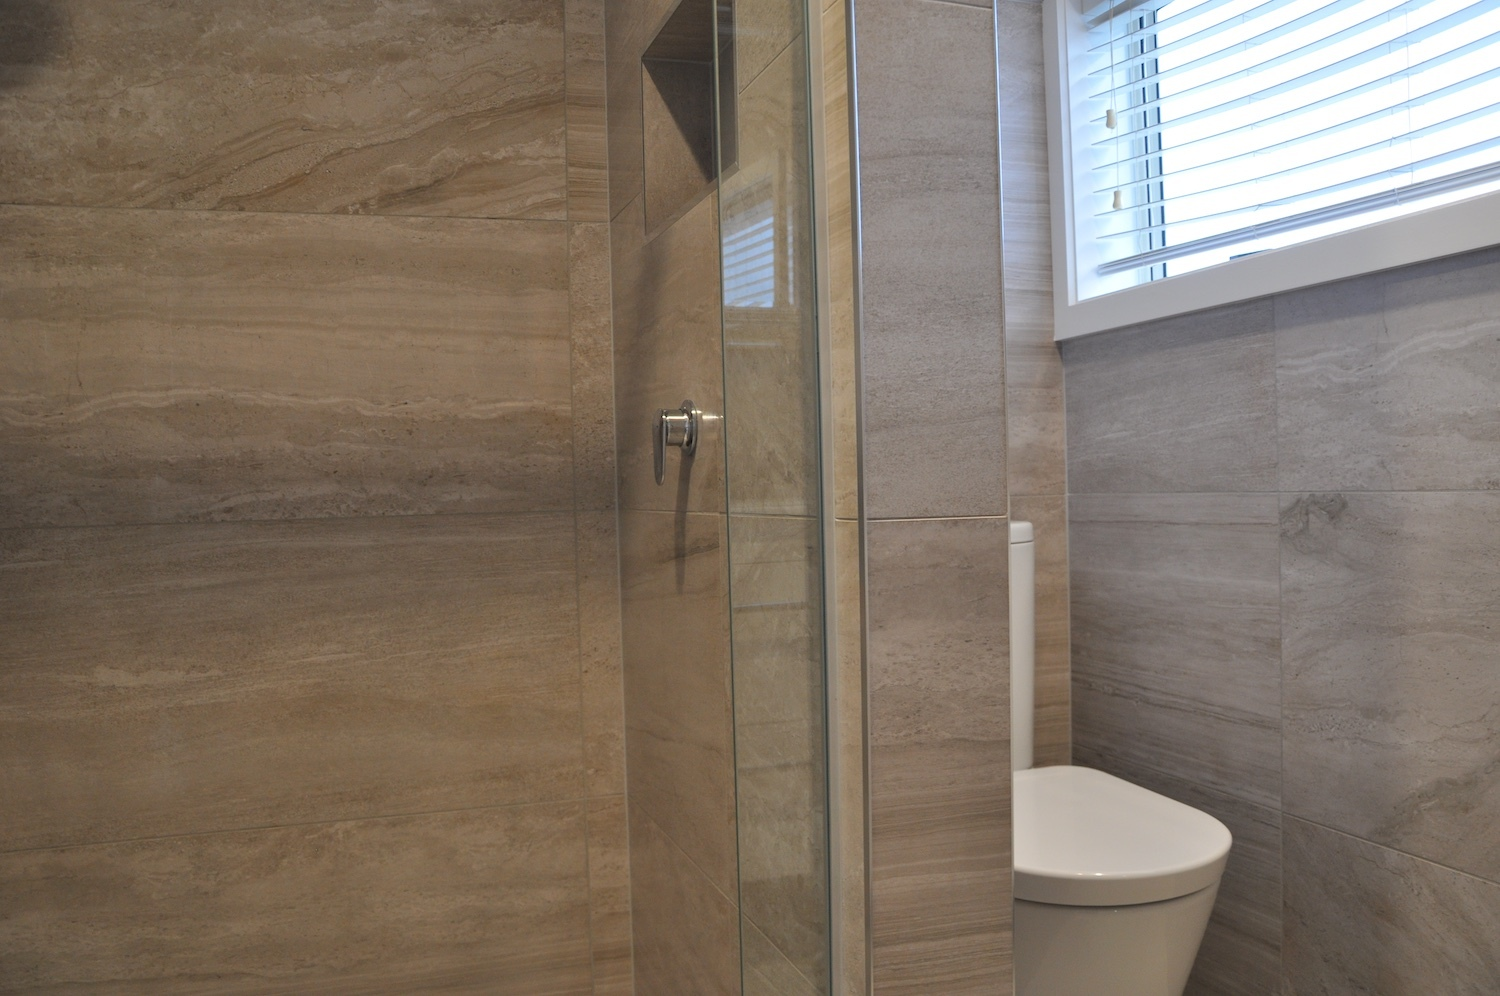 Ensuite shower shelf and toilet